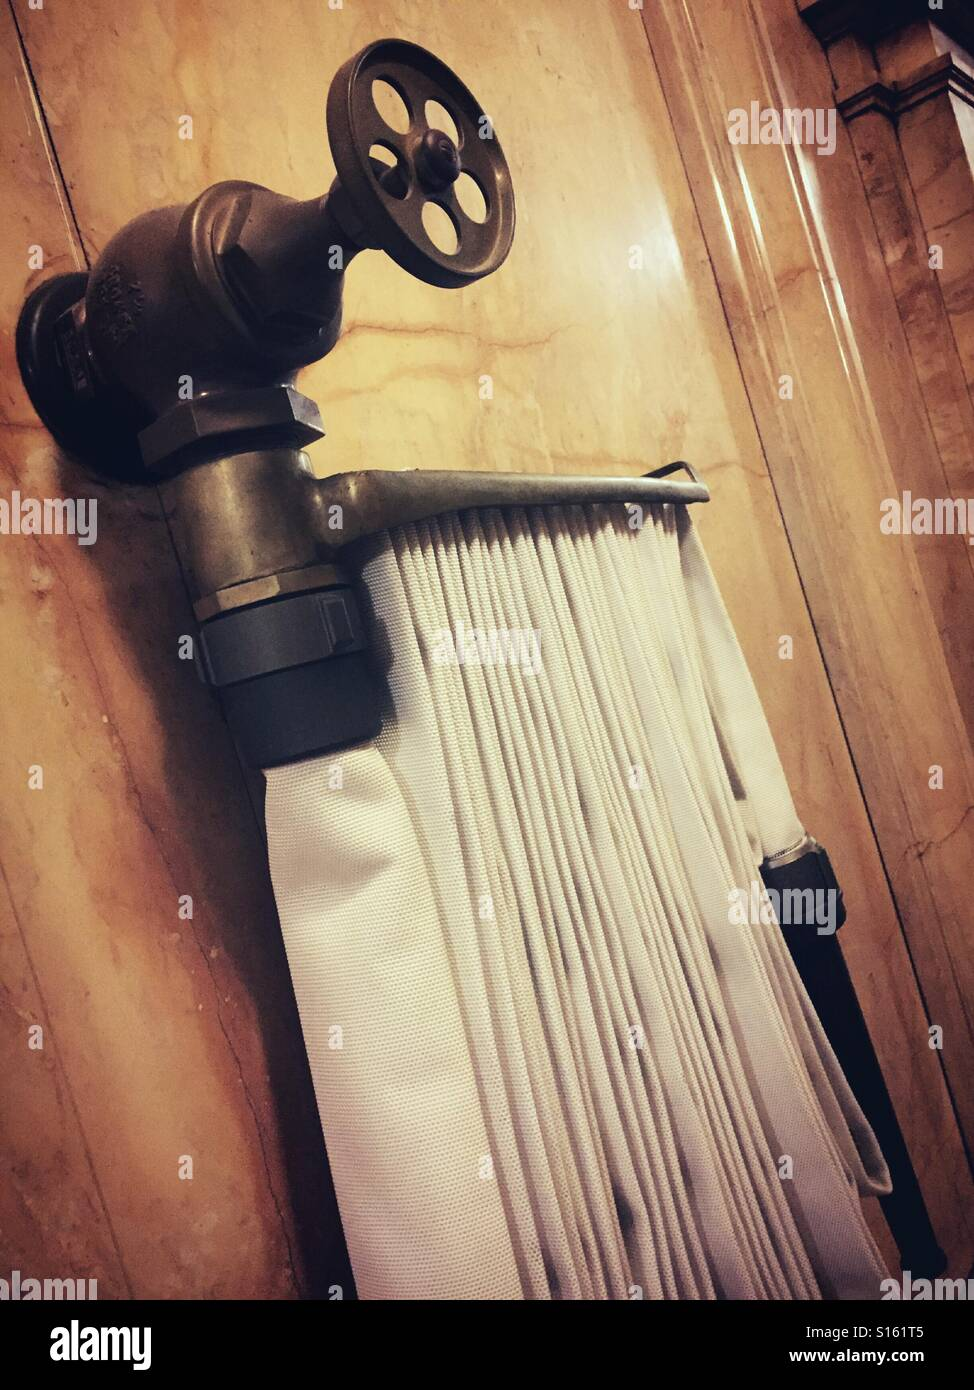 Firehose and standpipe firefighting equipment in stairwell. - Stock Image